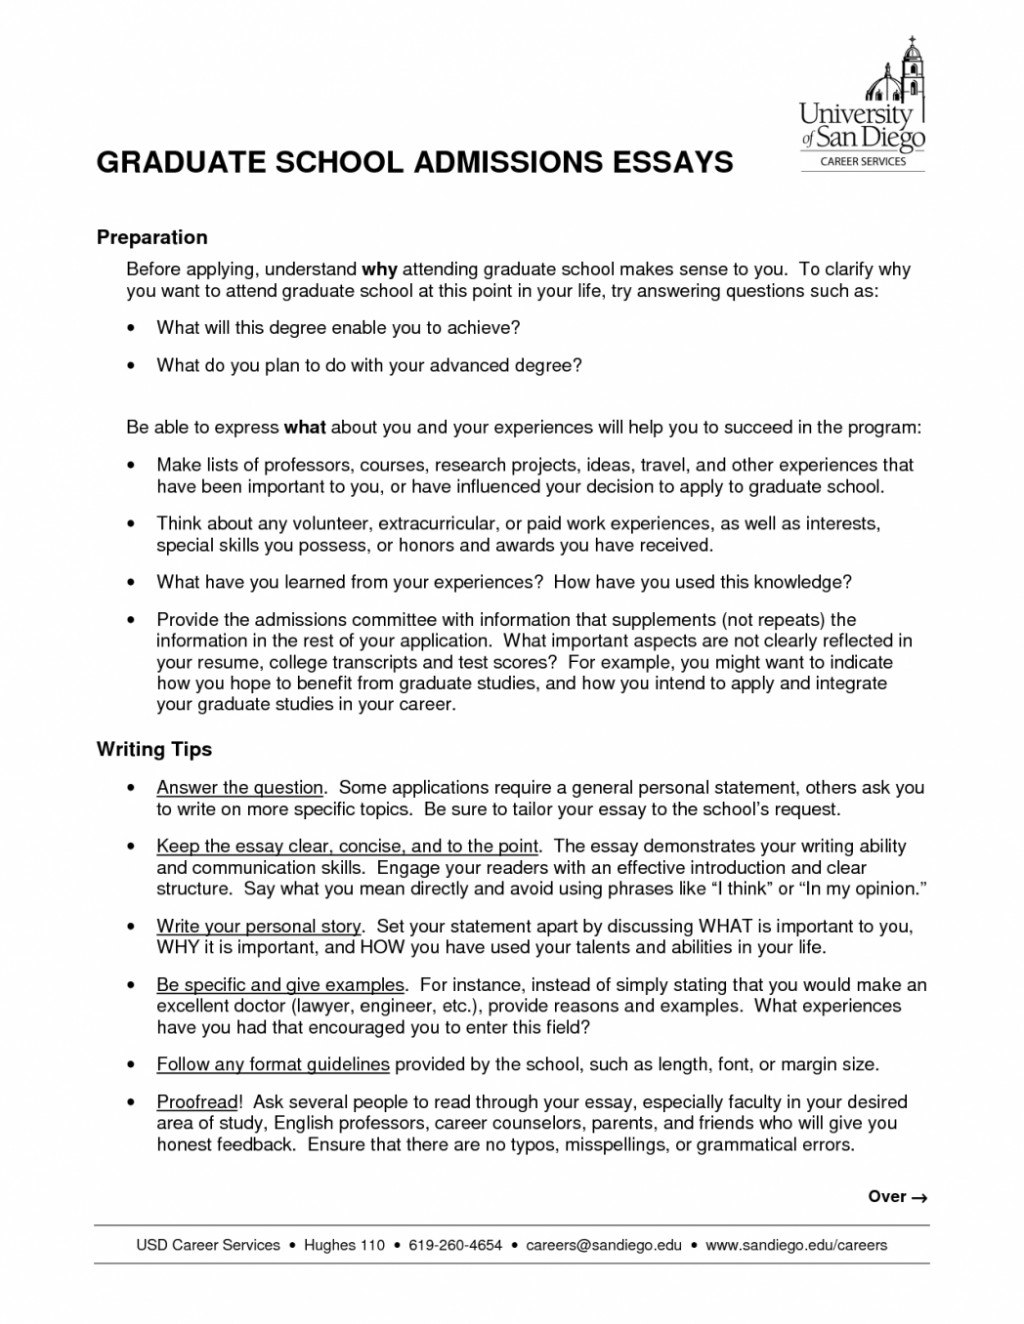 010 Essay Example Graduate School Format Grad Application Mersn Proforum Co Lic3k Examples Mba Tips Sample Writing Service Questions Counseling Free Heading Remarkable Personal Samples Large